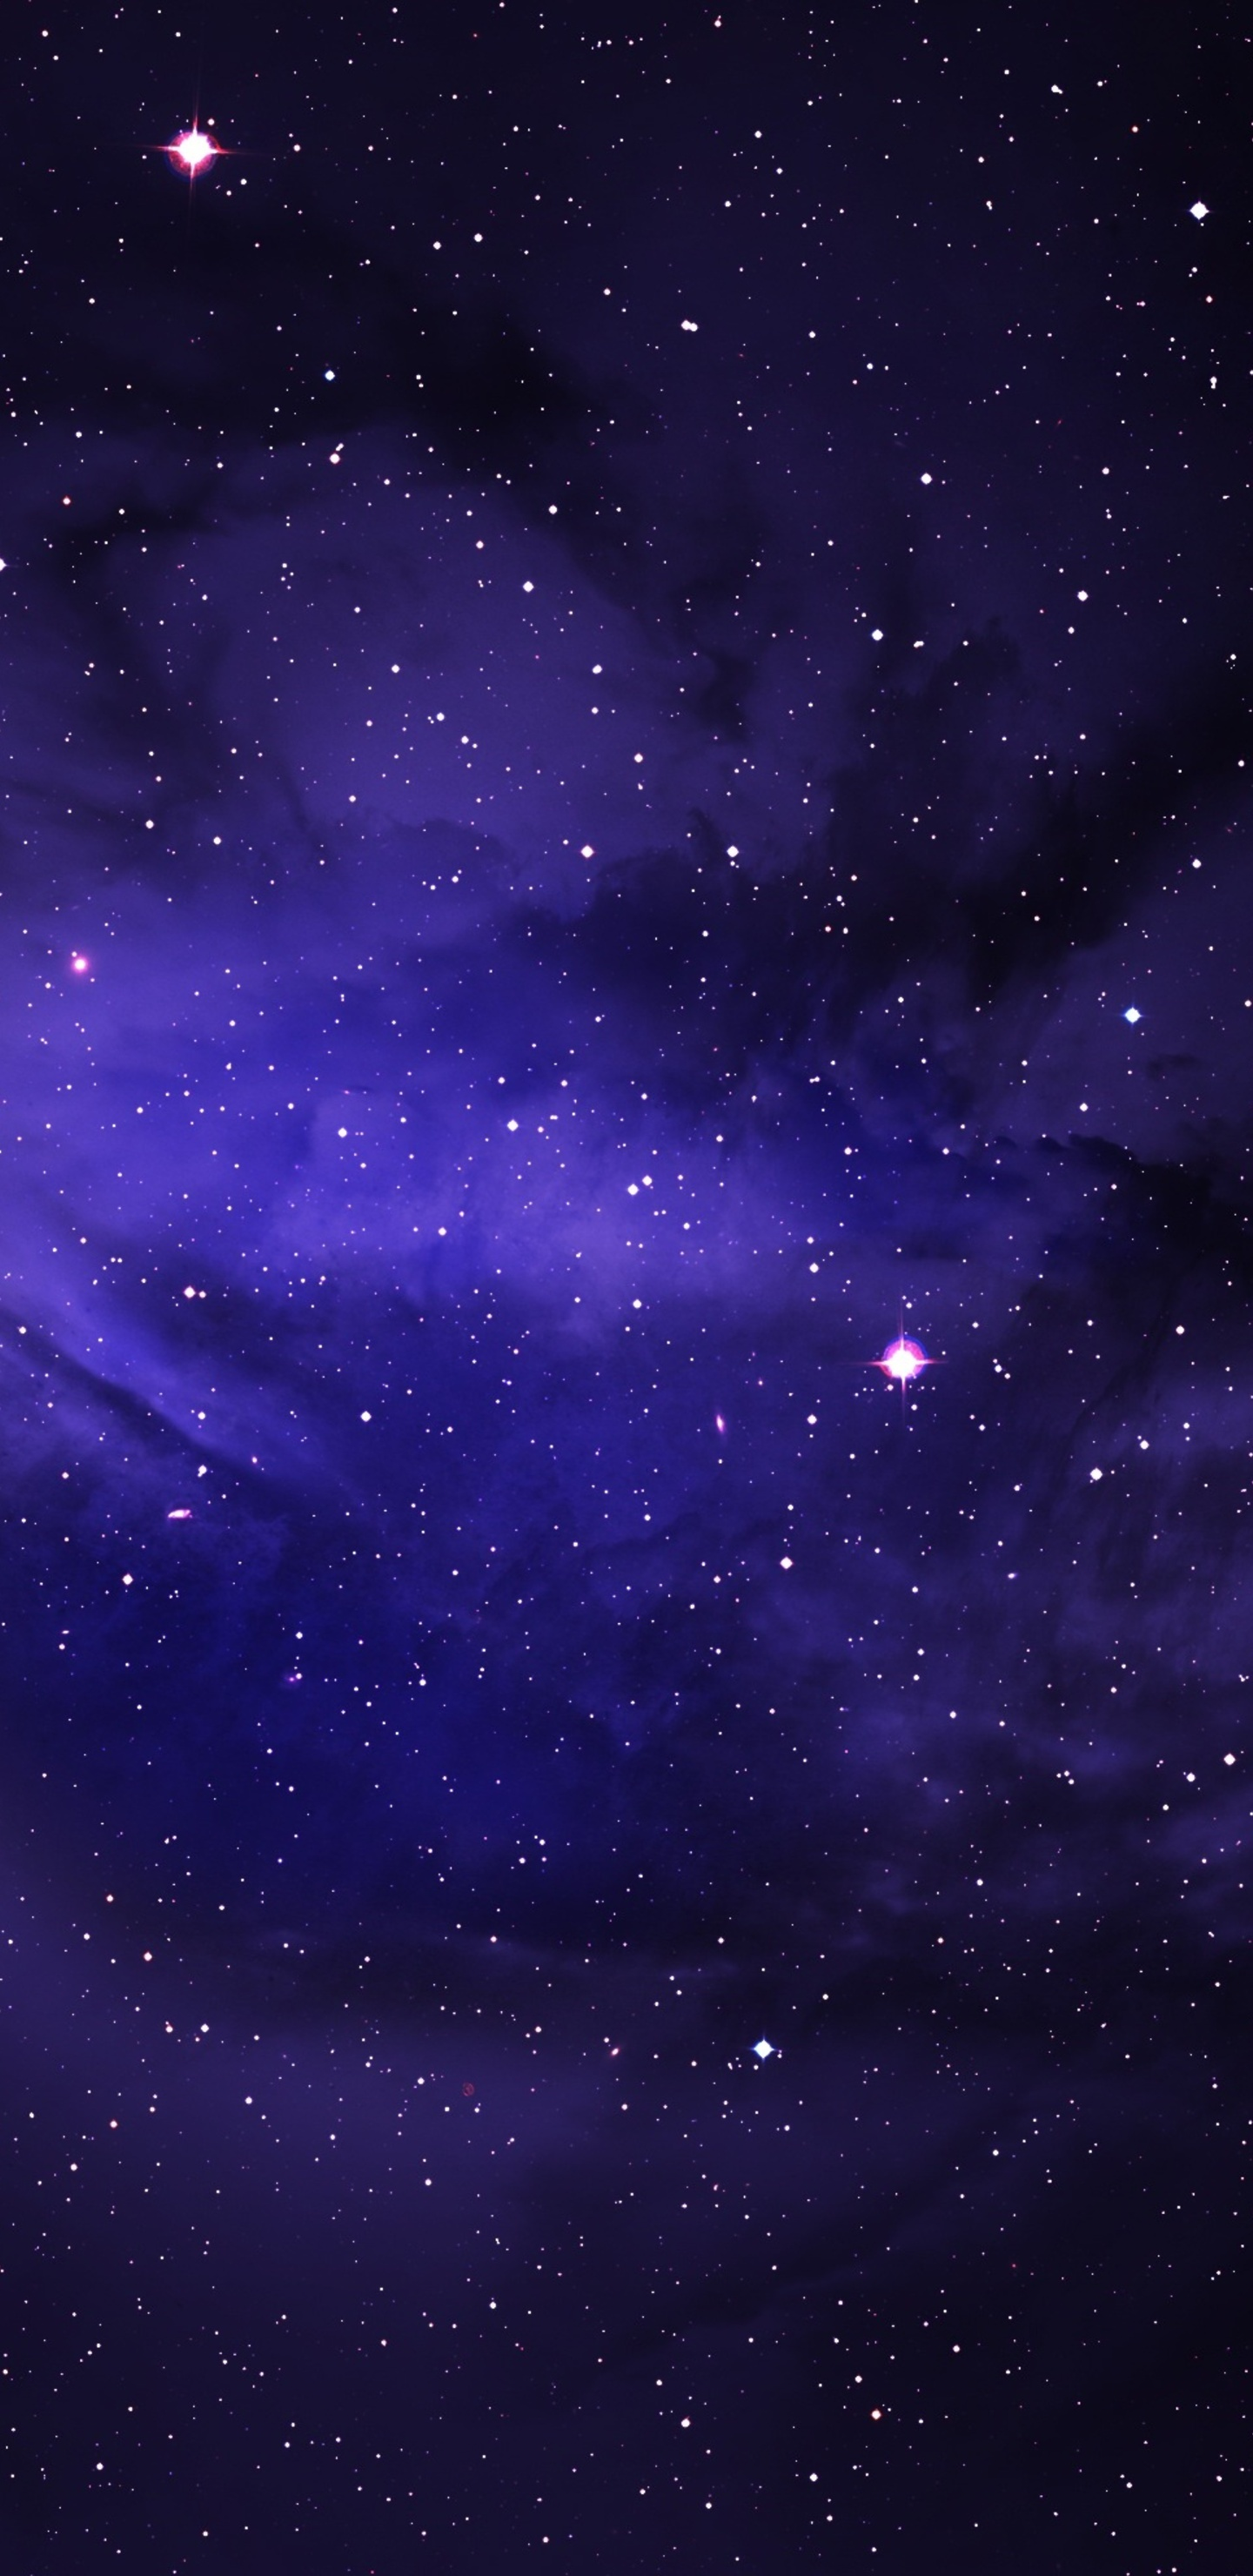 1440x2960 space stars purple sky samsung galaxy note 9 8 - Samsung s9 wallpaper 4k ...